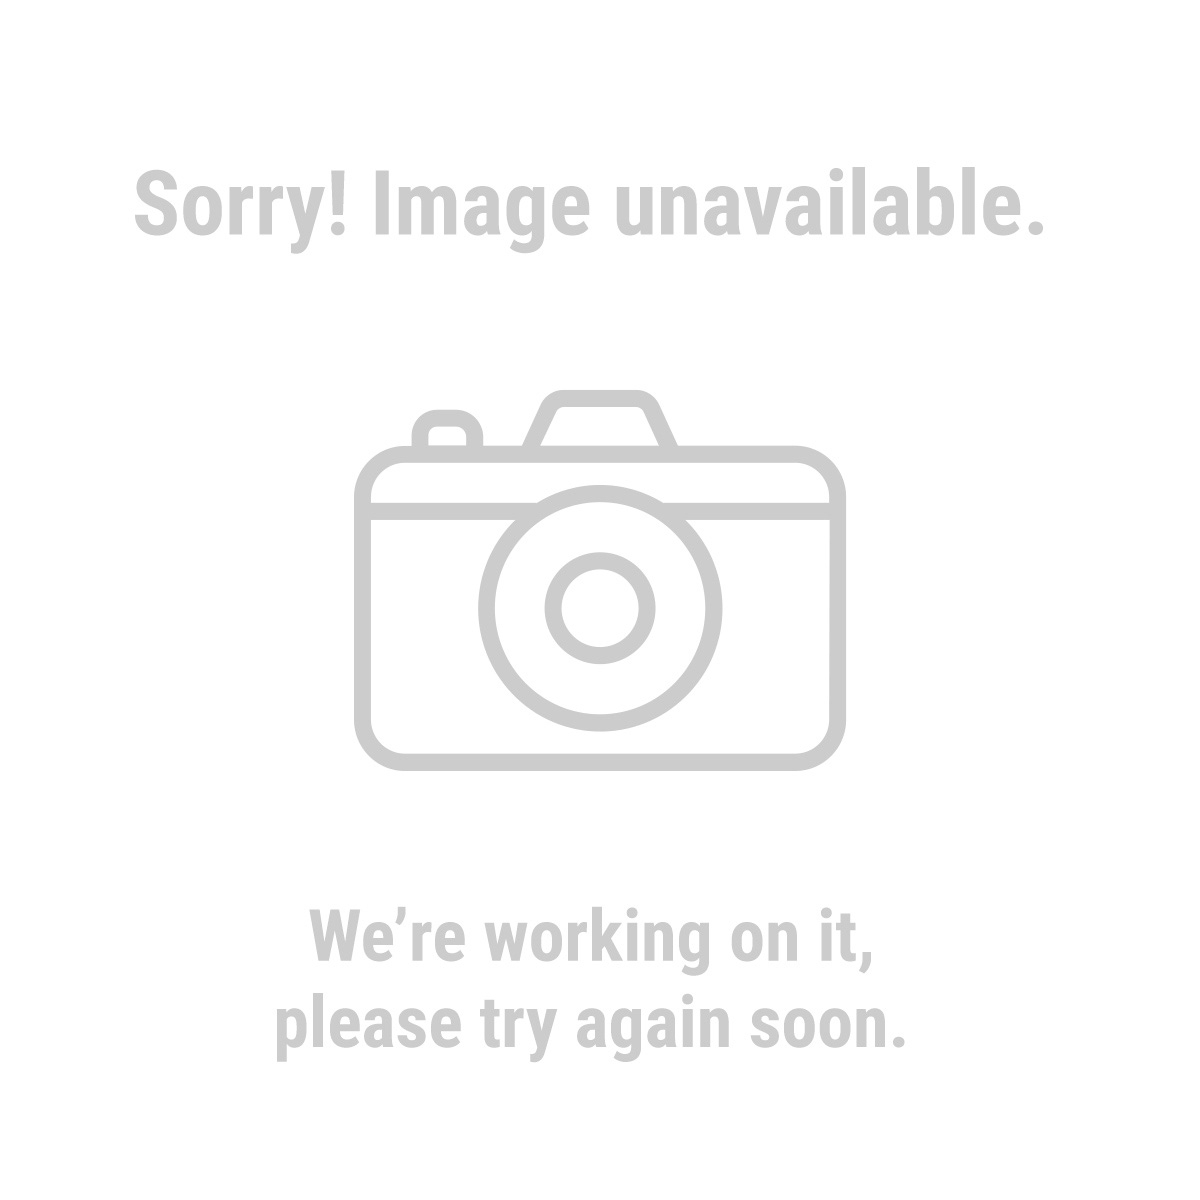 HFT 61880 36 Piece 1/2 in. Horsehair Bristle Acid Shop Brushes